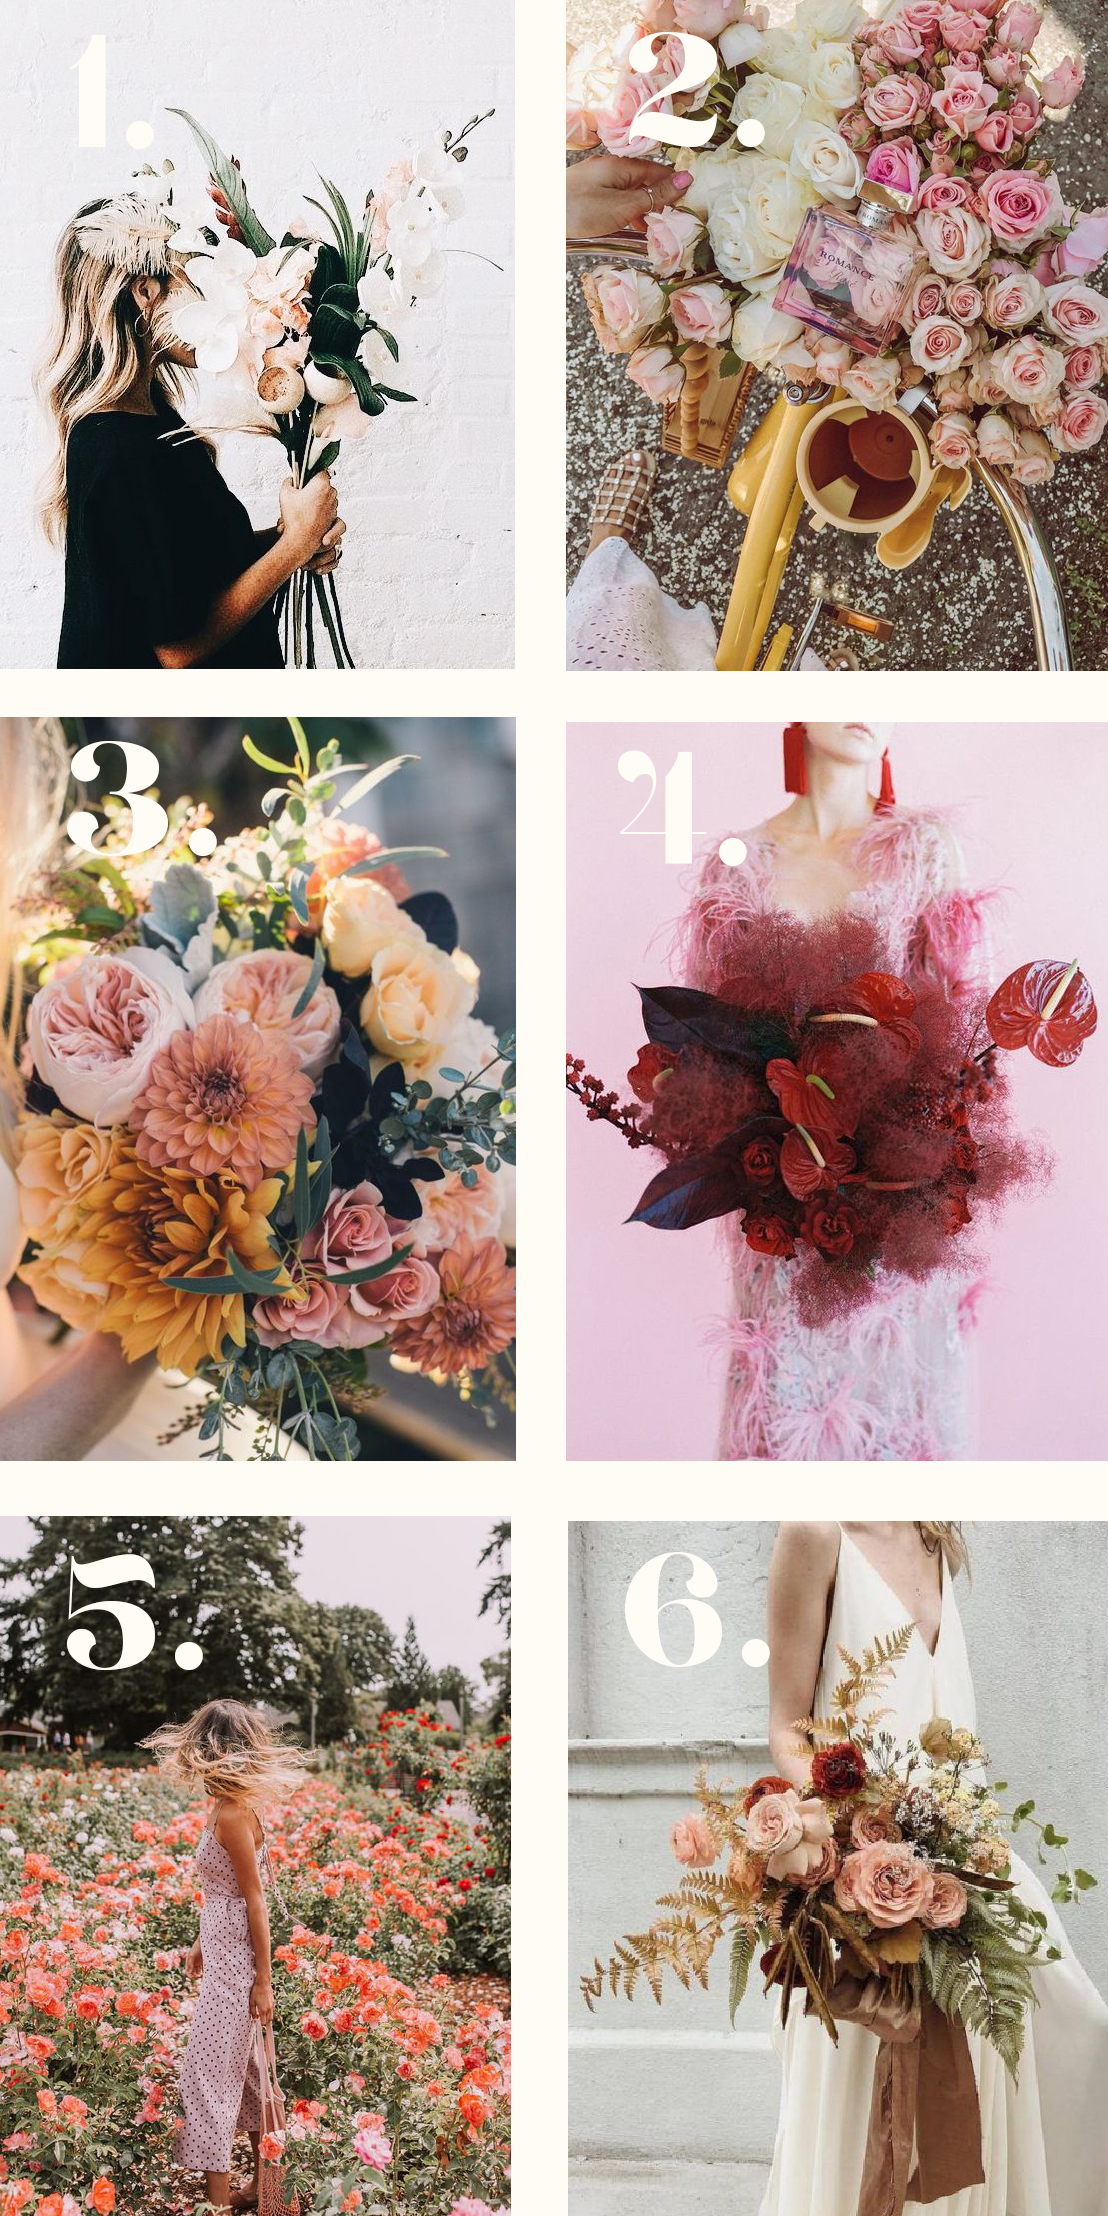 1. modern, sweet, chic and very put together  2. all the roses all day. but you know, only the super cool roses in the perfect color ways  3. classic, pretty, wild and sweet  4. she cray and very, very beautiful  5. i'm here for every wild flower there is. make it wild  6. in my other life, i'm a fashion stylist, and i'm also super romantic